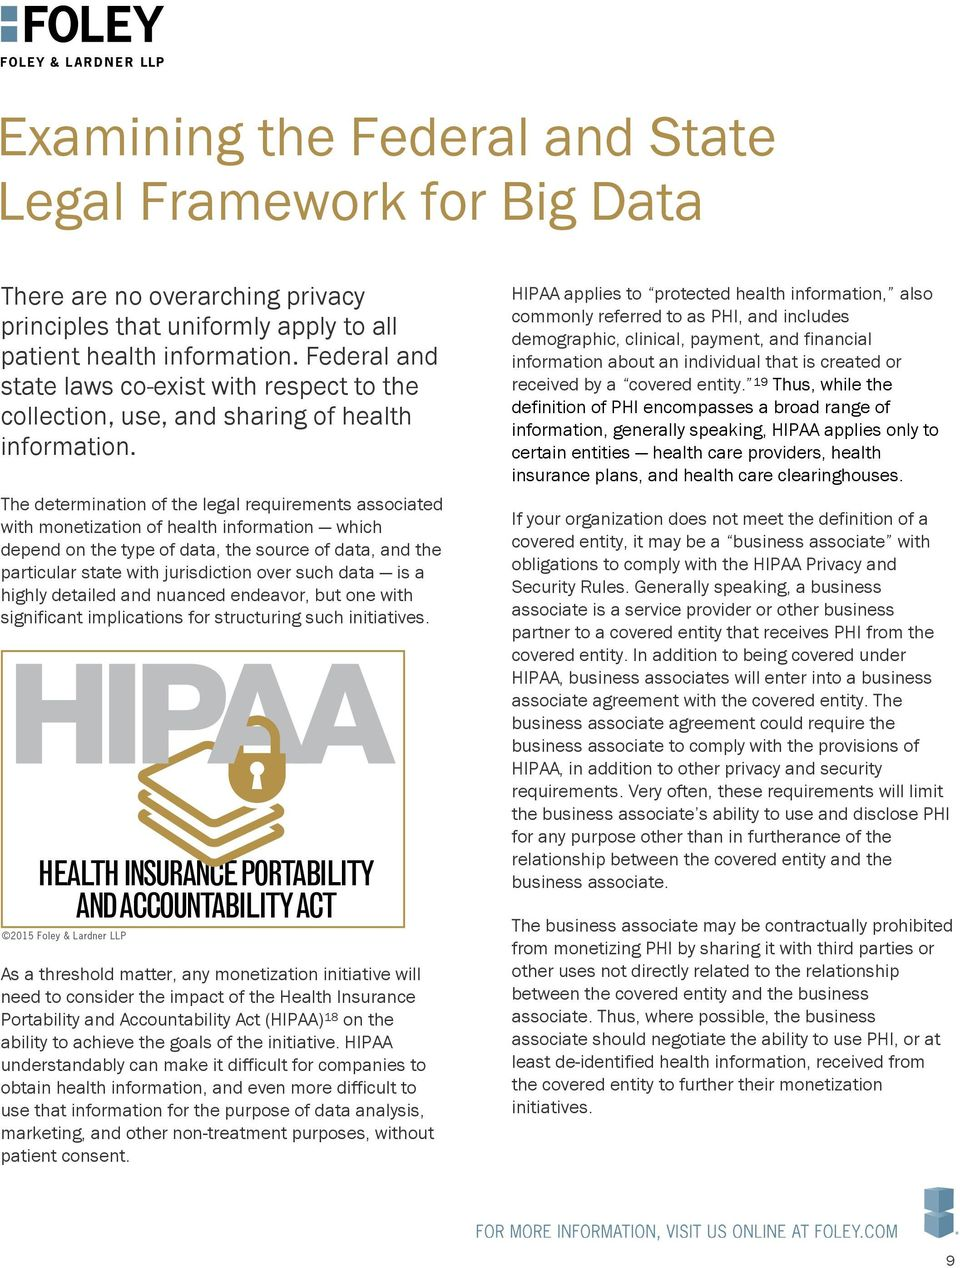 The determination of the legal requirements associated with monetization of health information which depend on the type of data, the source of data, and the particular state with jurisdiction over